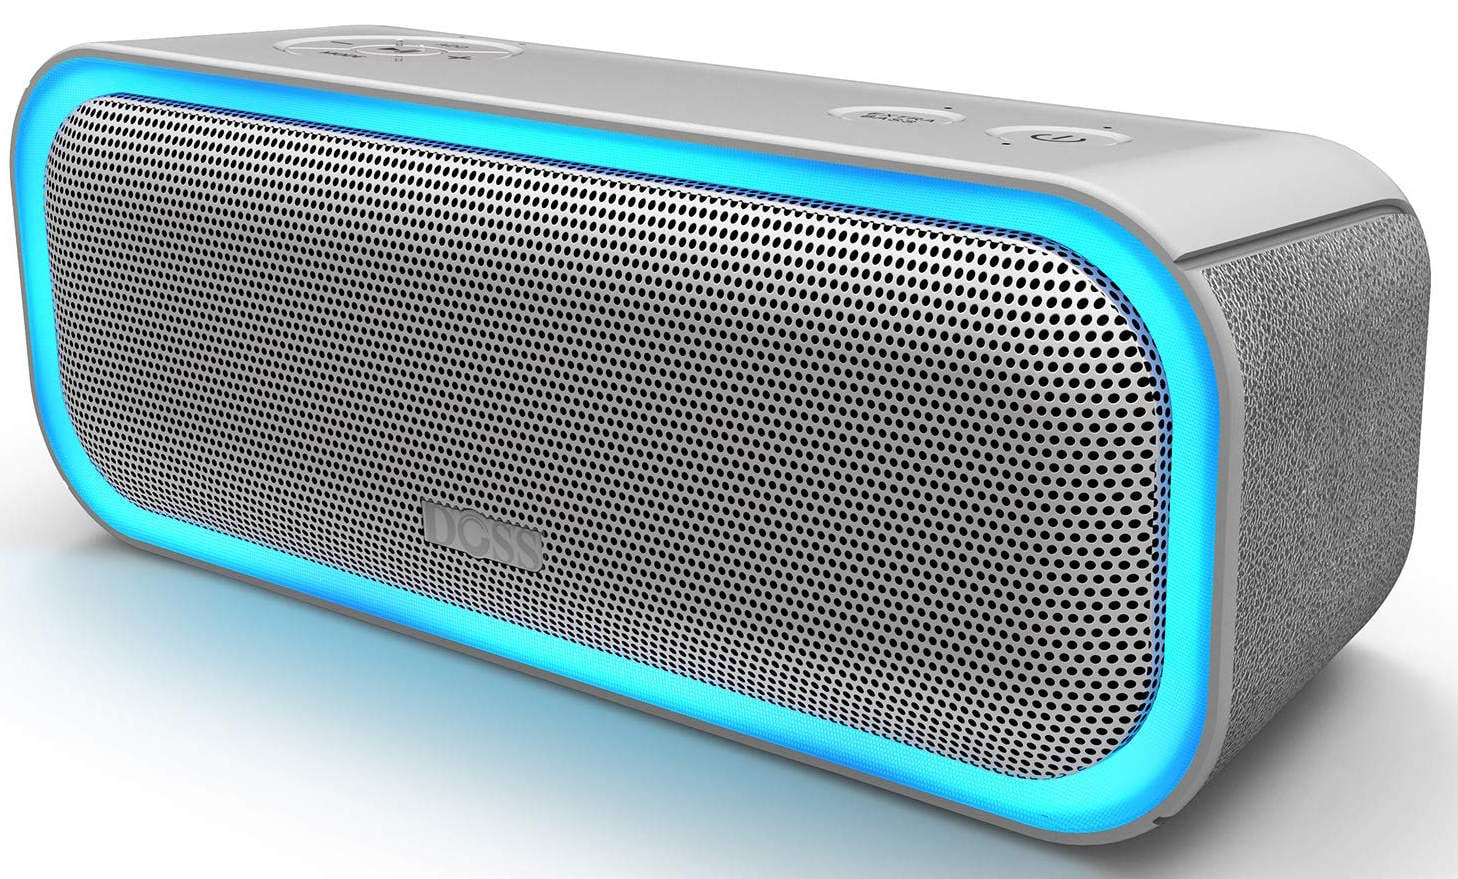 Buy Doss Soundbox 20w Stereo Sound Pro V4 2 Portable Bluetooth Speaker Grey Features Price Reviews Online In India Justdial